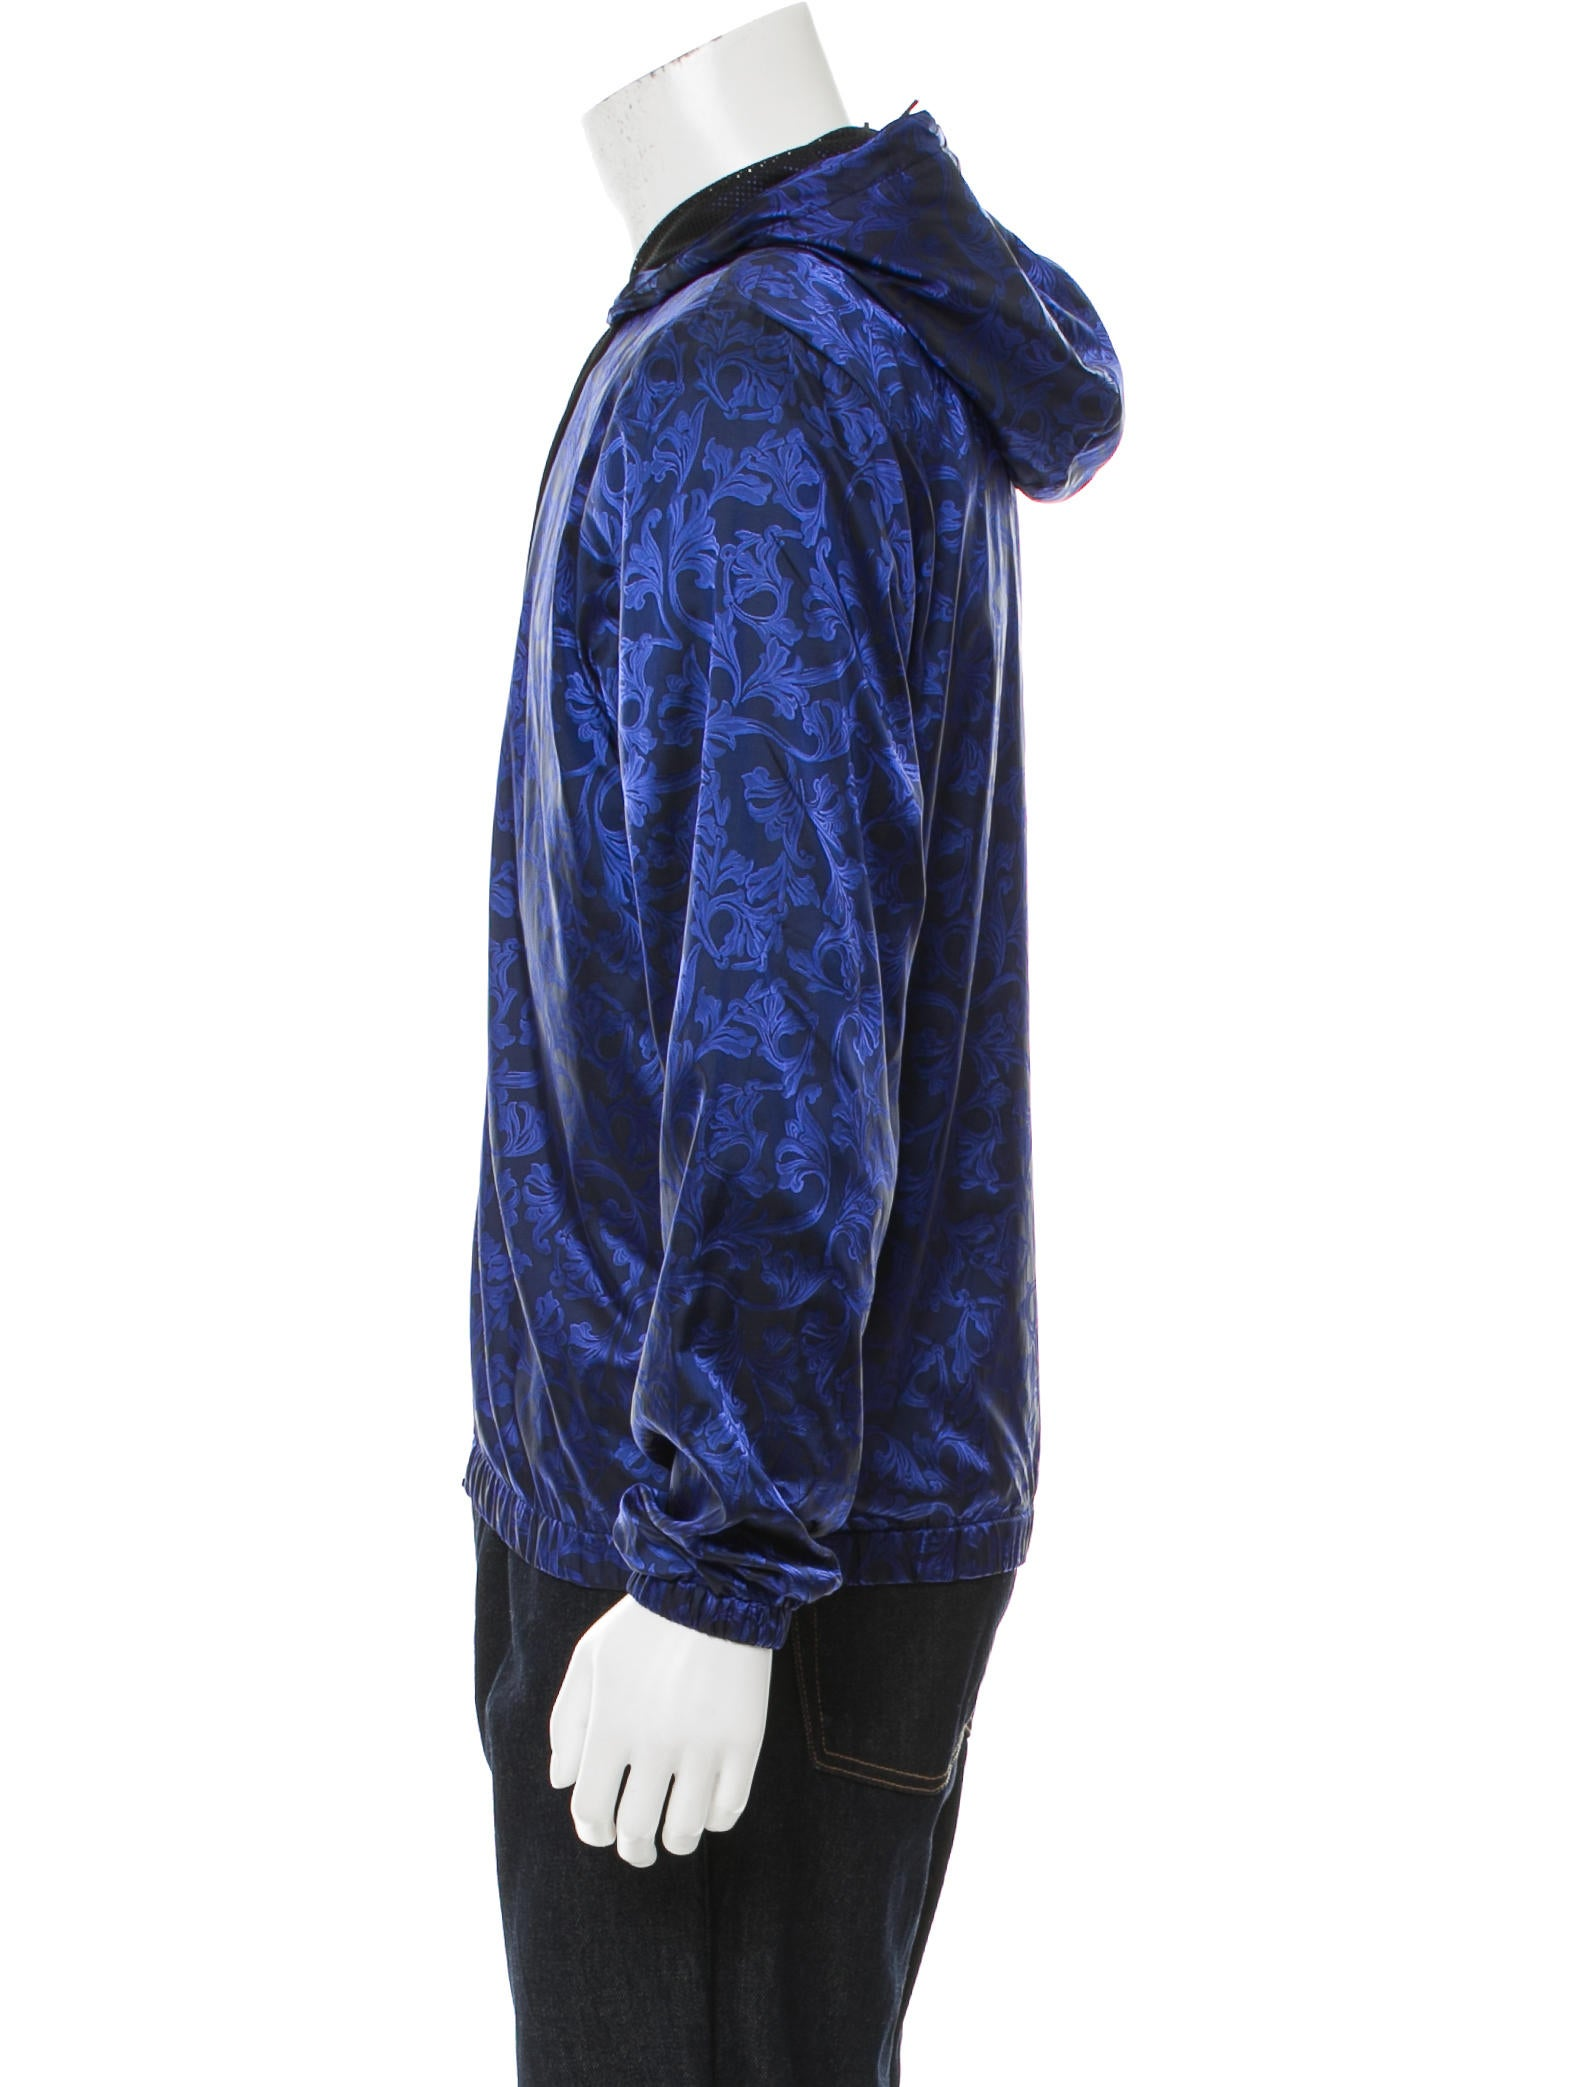 Versace Brocade Print Windbreaker Jacket w Tags  : VES299272enlarged from www.therealreal.com size 1582 x 2087 jpeg 173kB